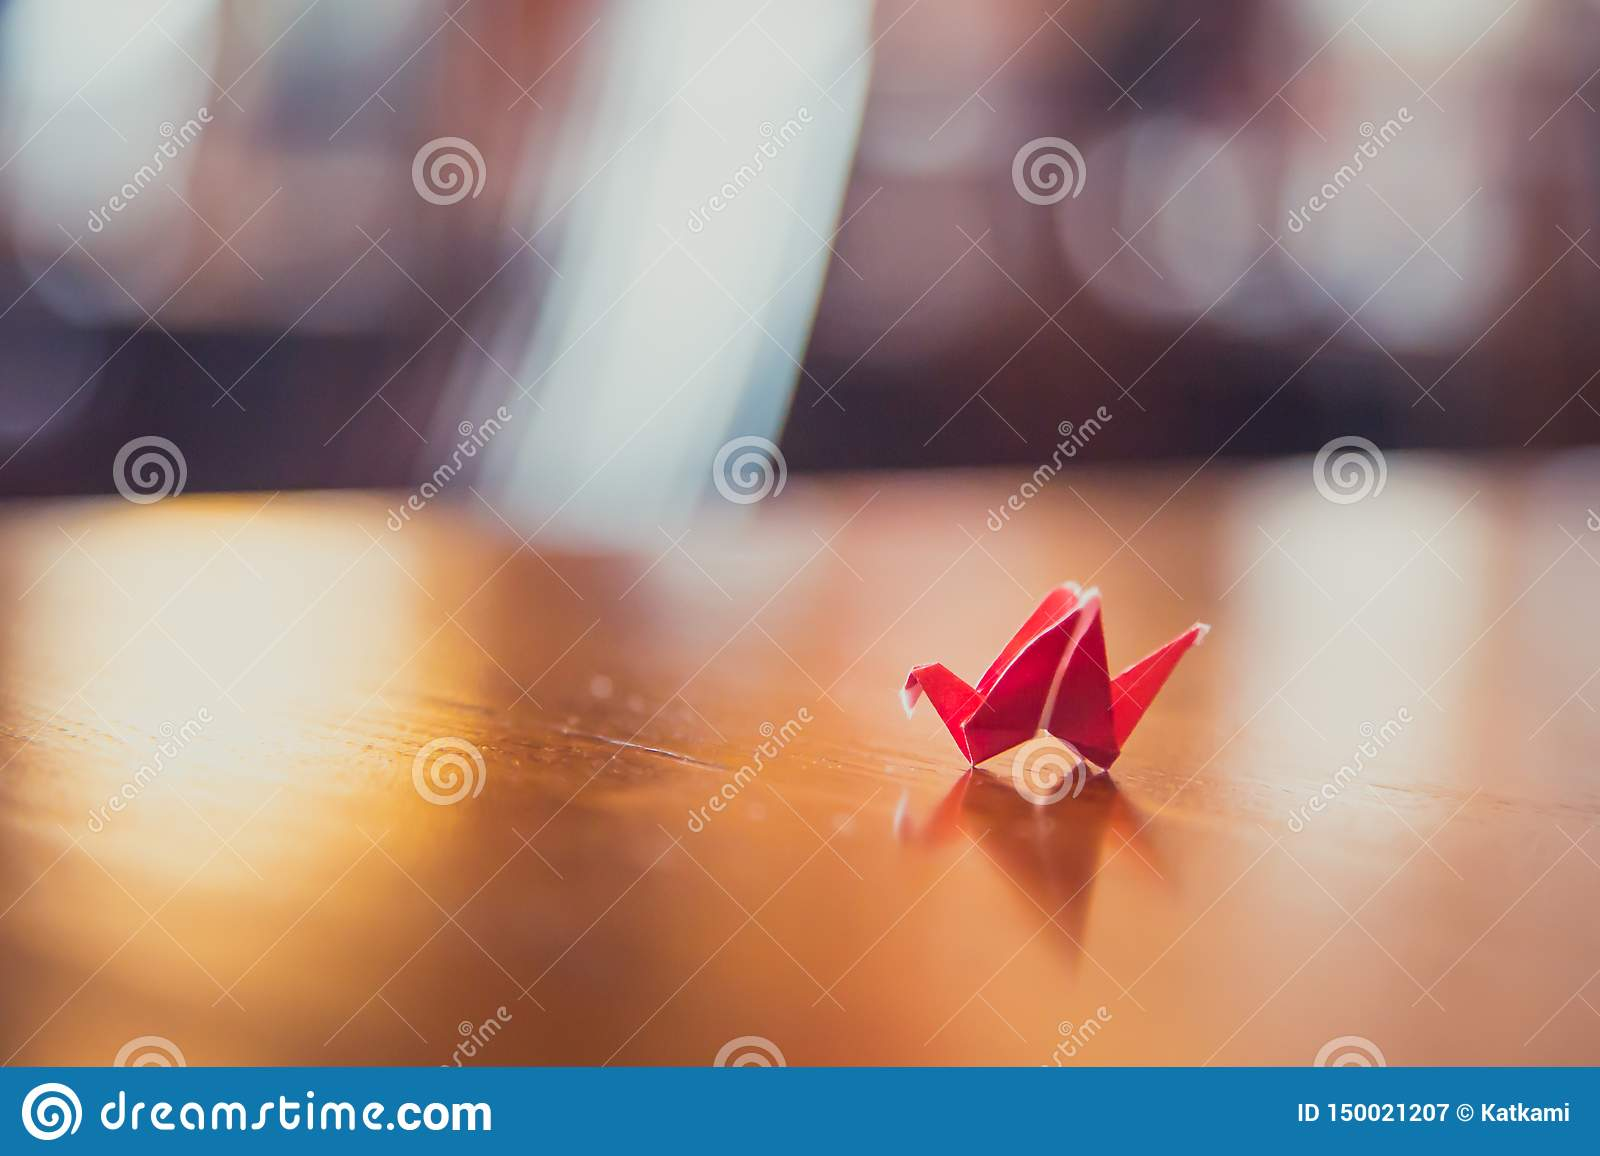 Tiny red origami crane on table